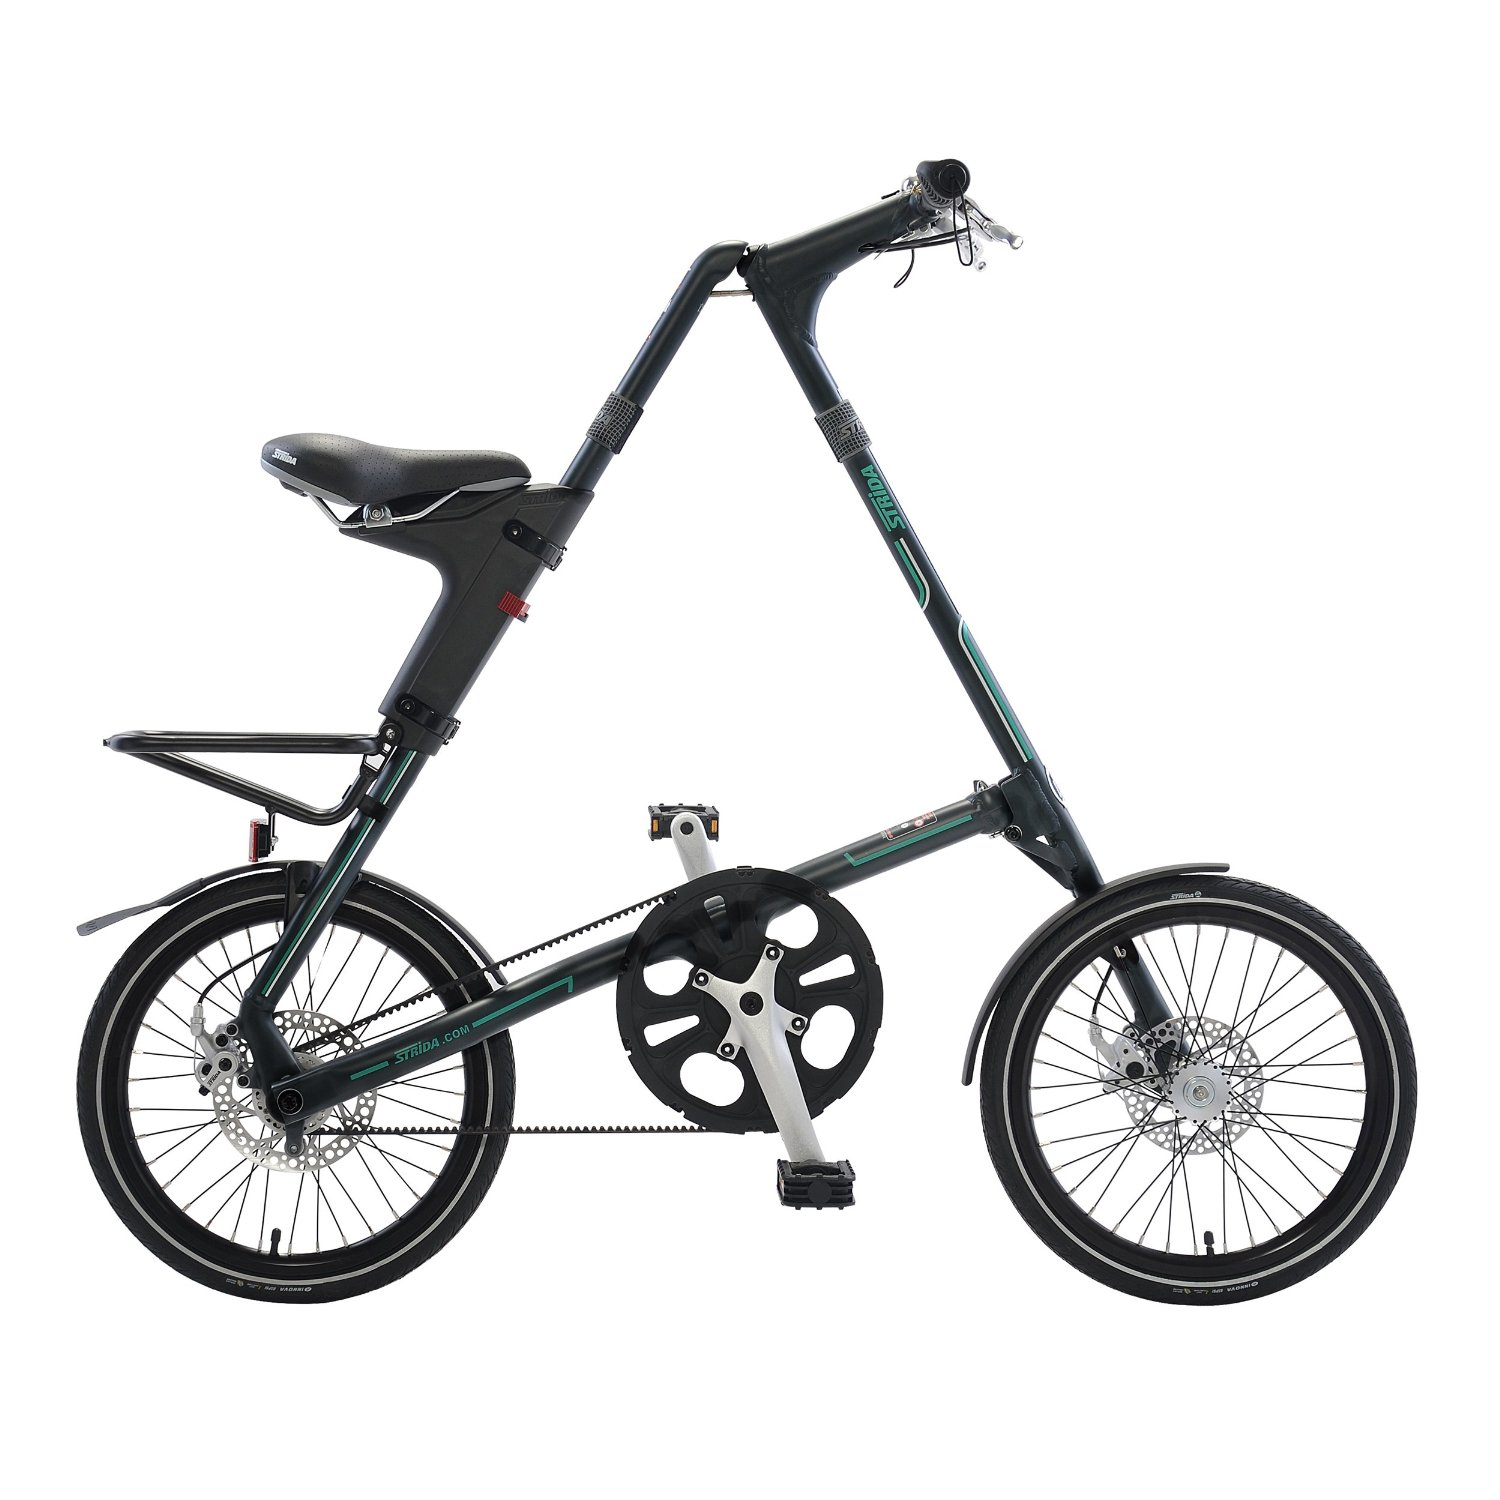 Strida folding bike: overview, features and reviews 94